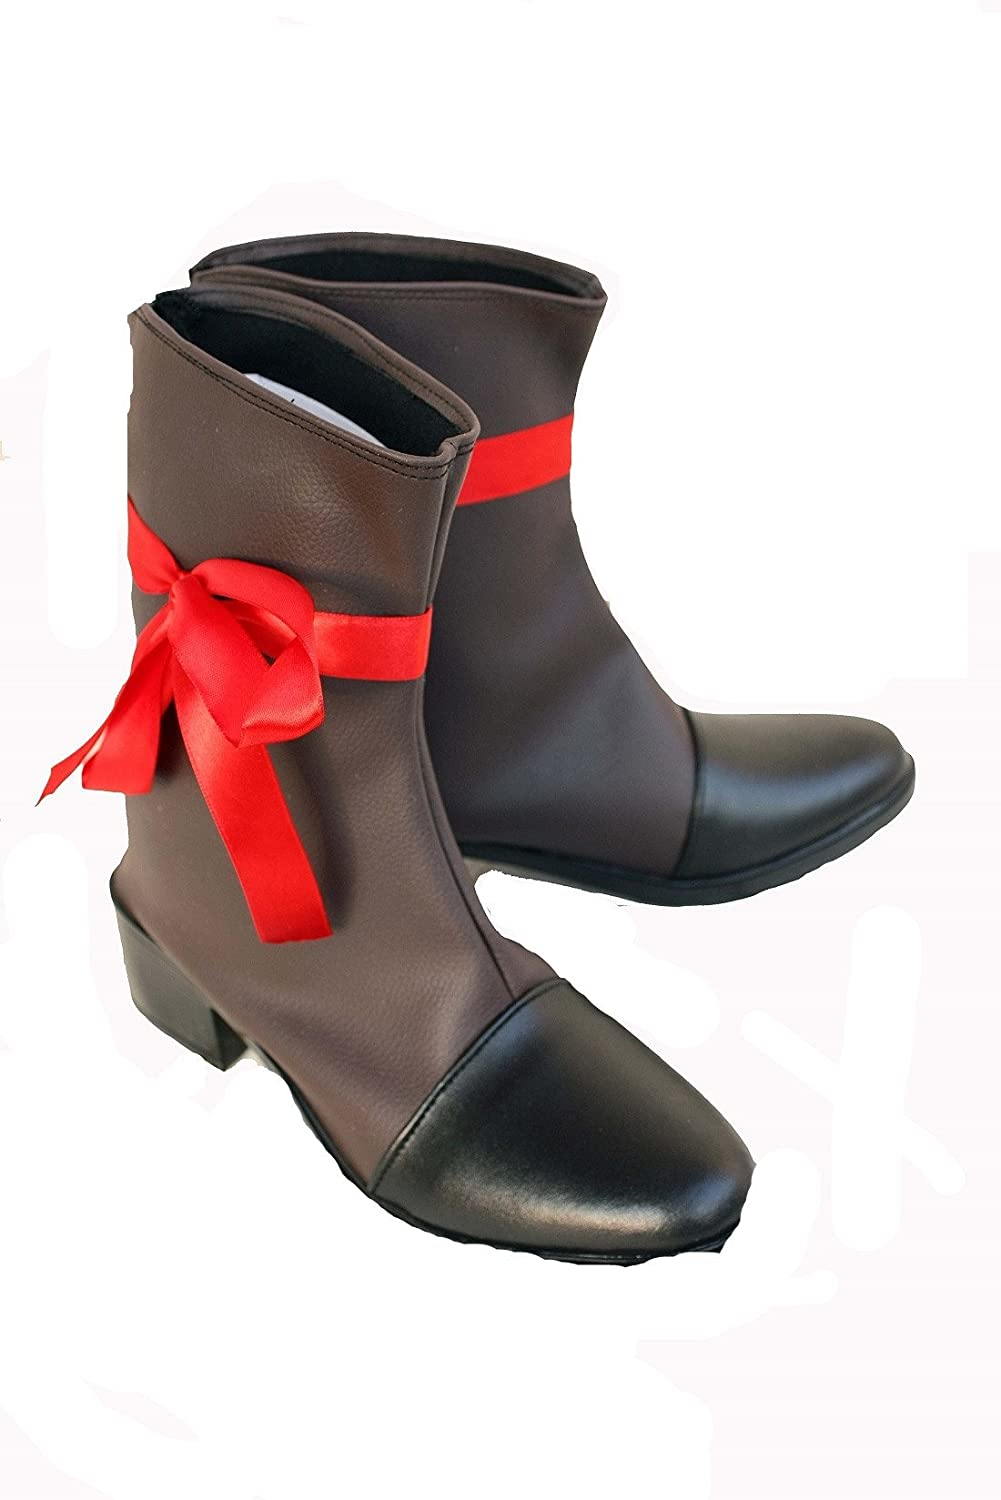 Axis Powers Hetalia APH France Cosplay Costume Boots Boot shoes shoes